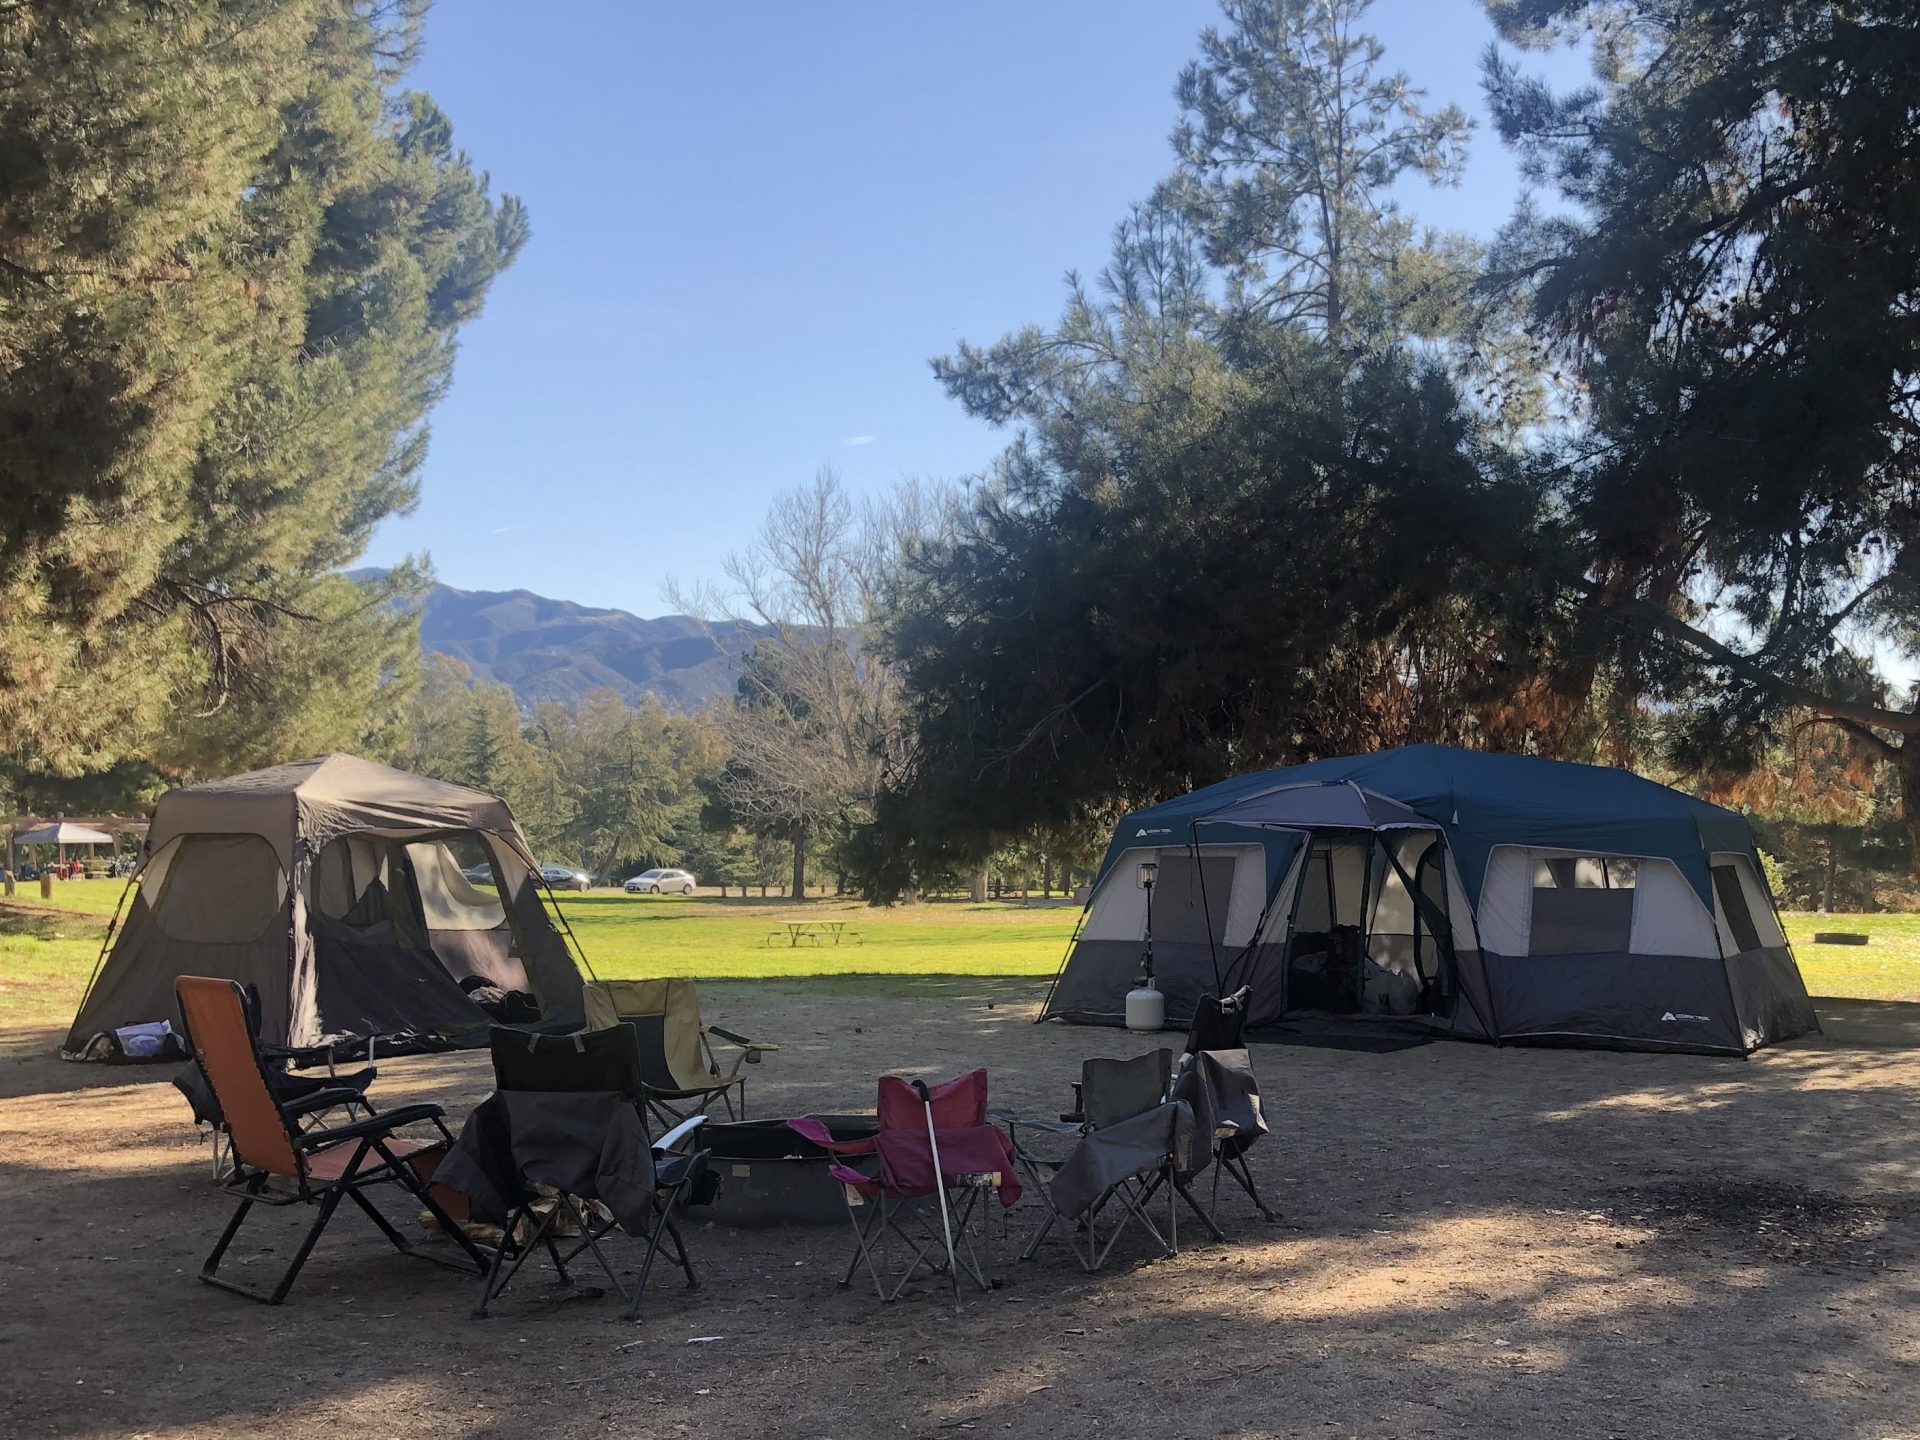 2 tents at Yucaipa Camping ground